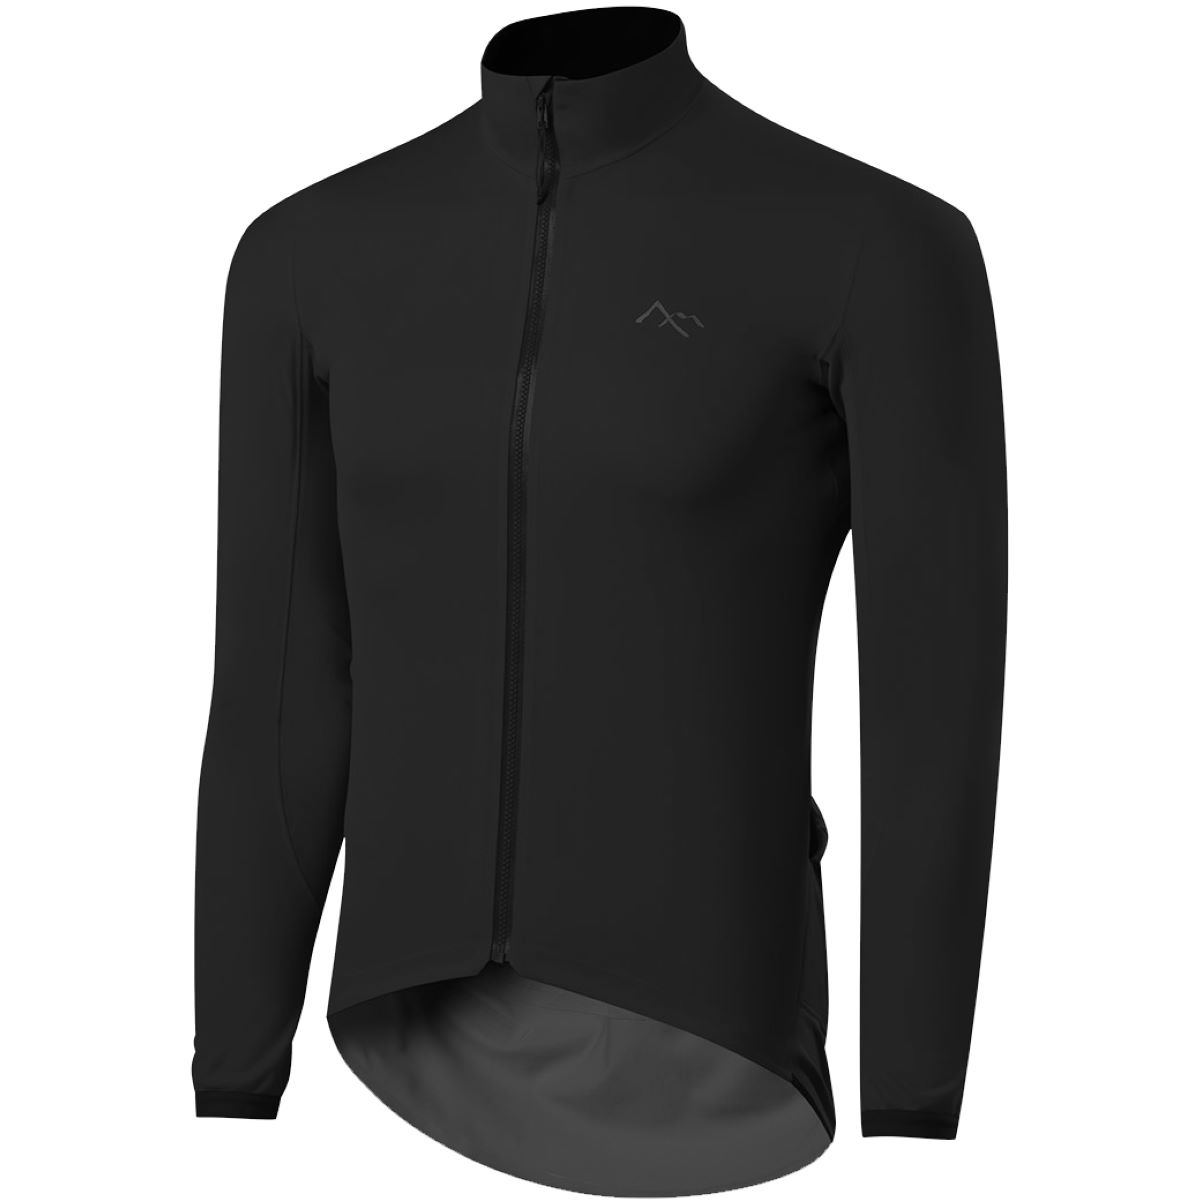 Maillot 7Mesh Corsa Softshell Windstopper - Chaquetas